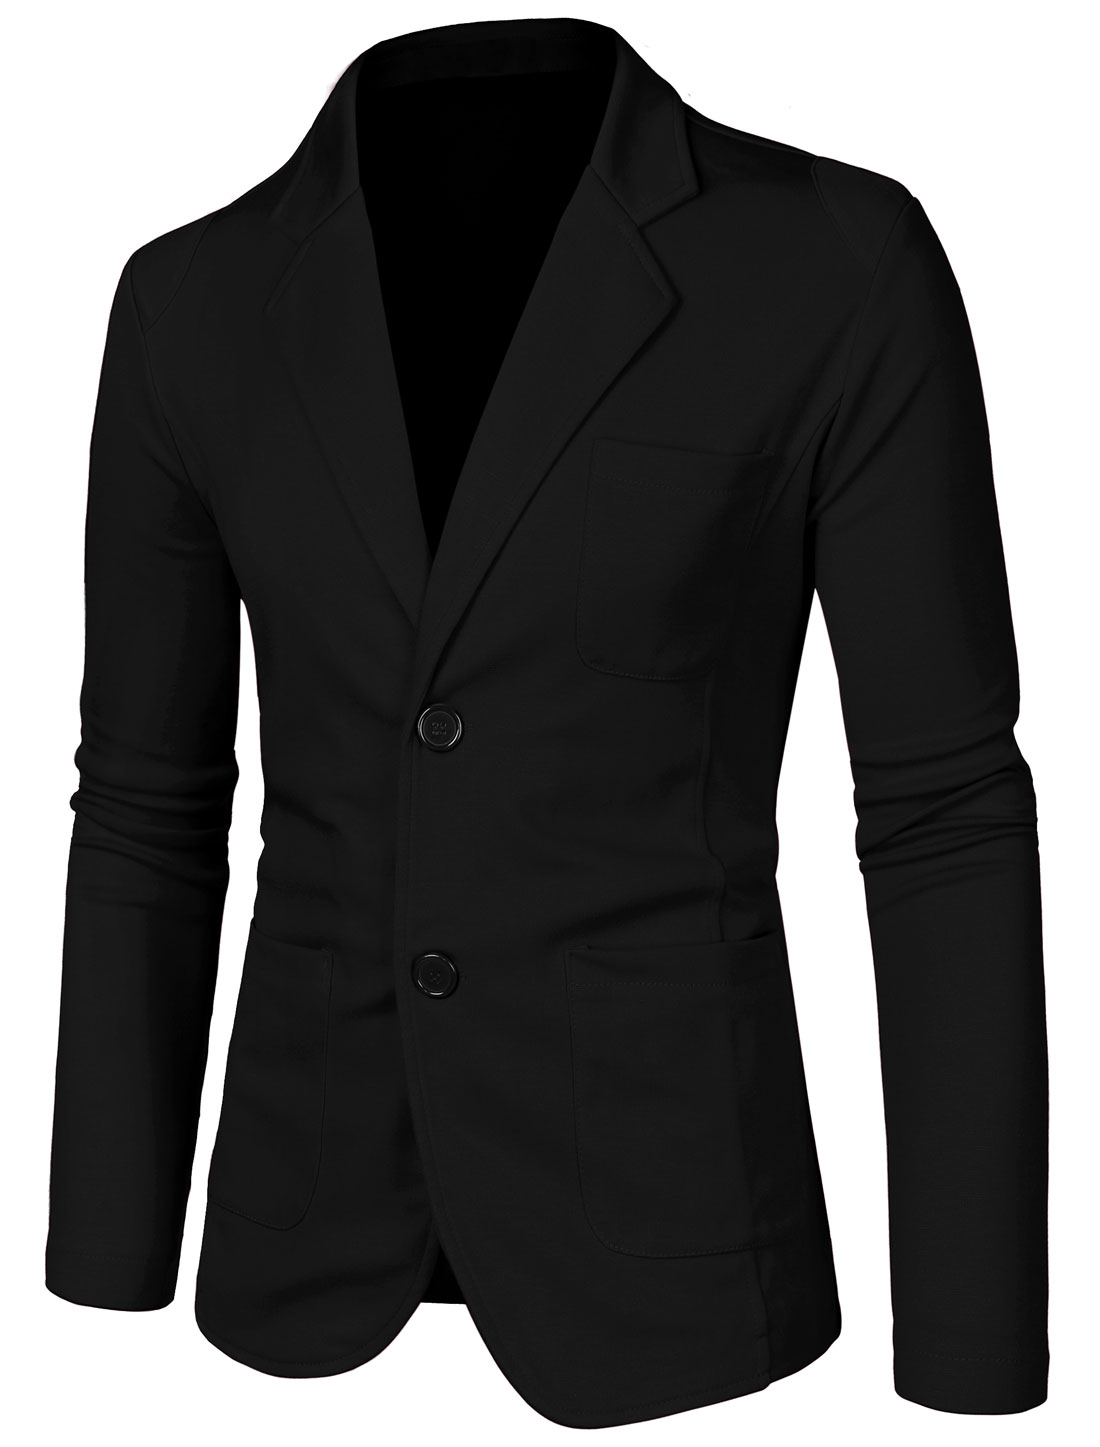 Men Notched Lapel Long Sleeve Pockets Thin Blazer Black L